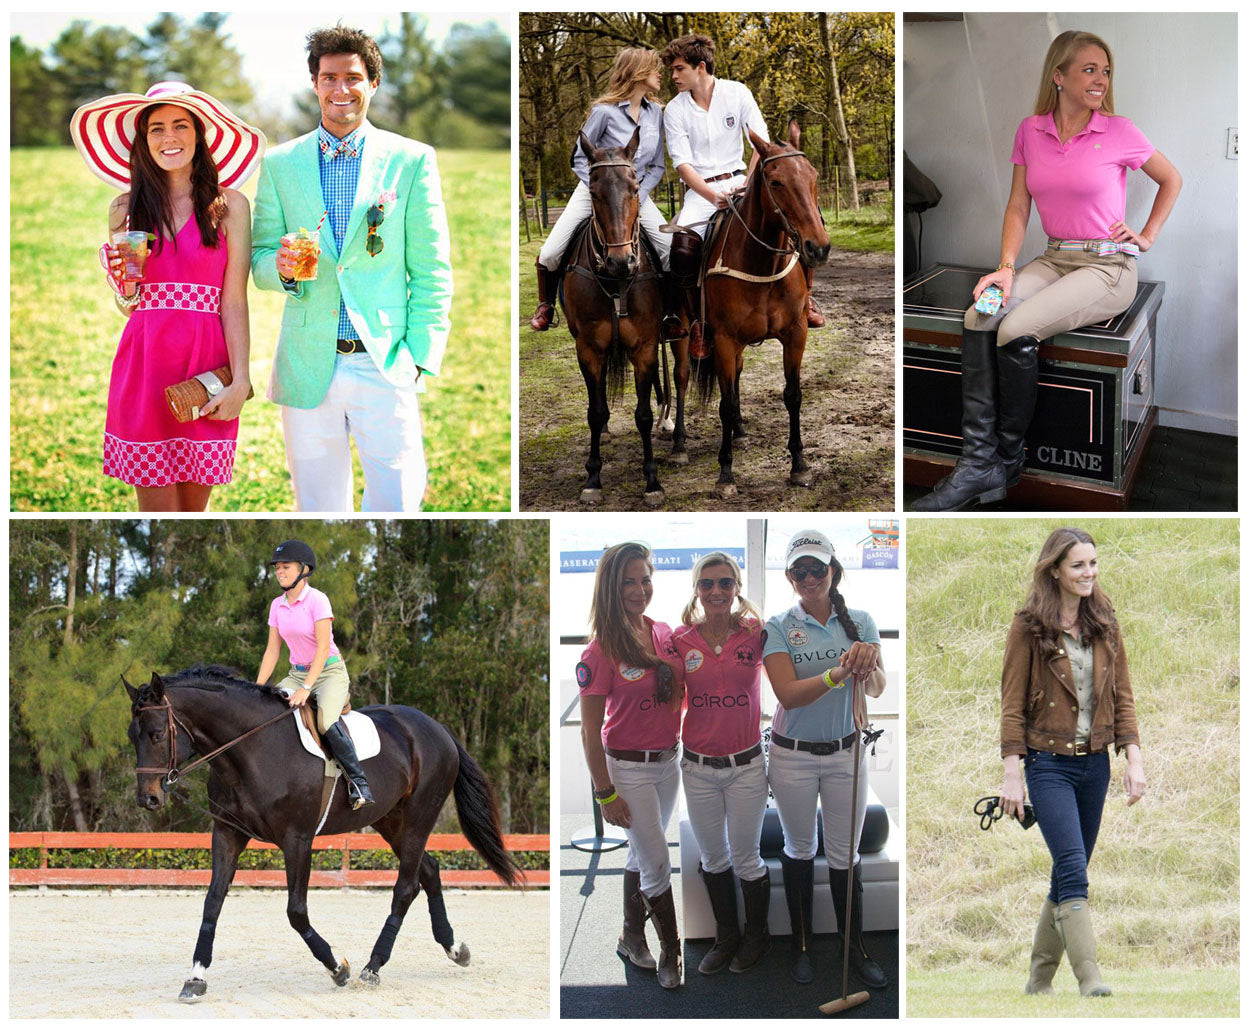 Equestrian Sports Preppy Olympics